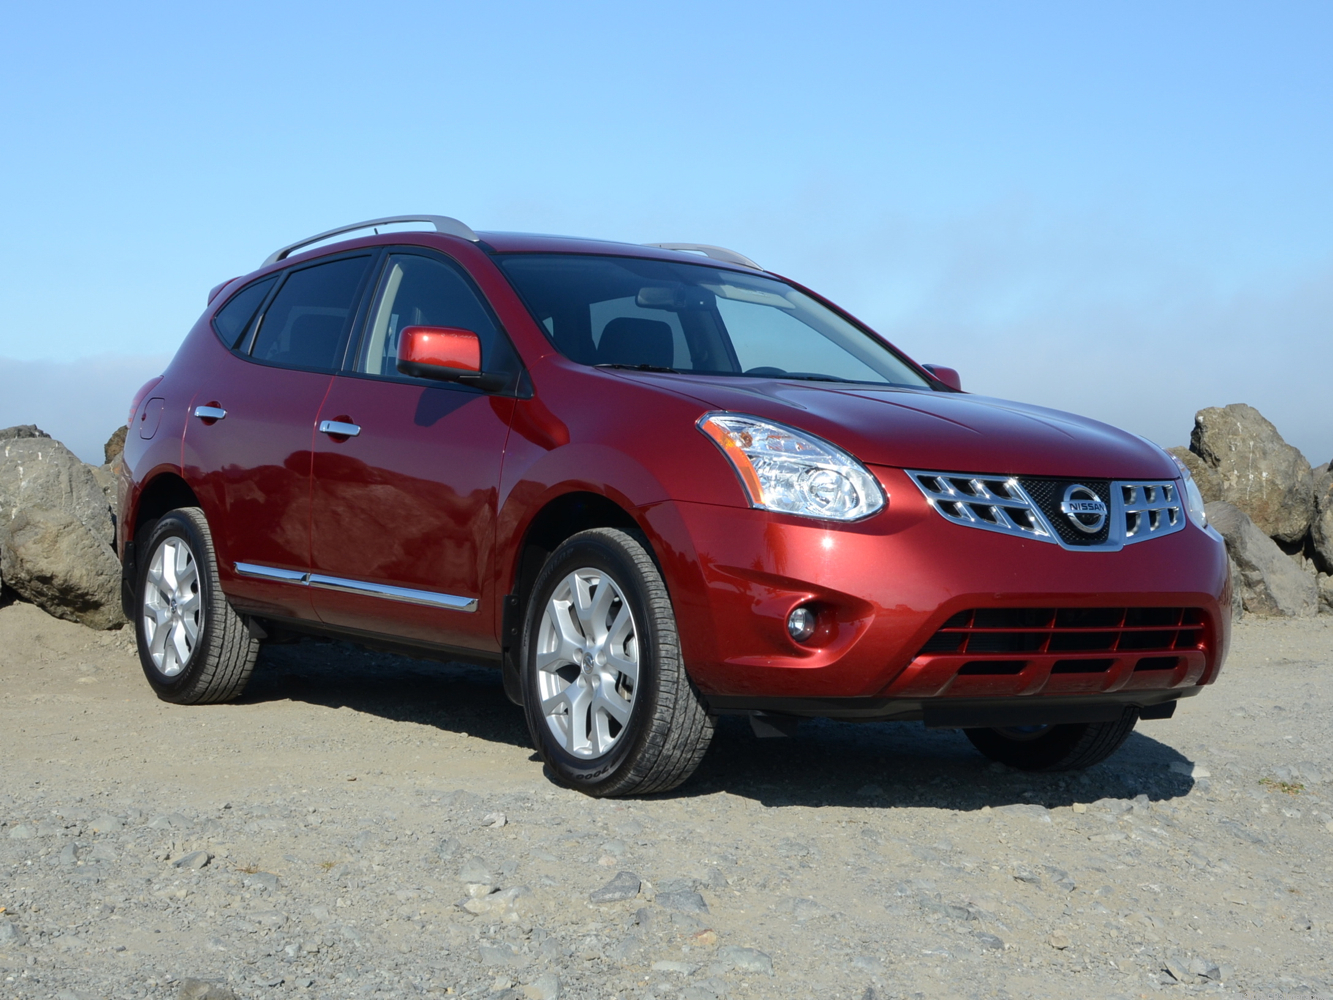 2013 nissan rogue sv review cnet. Black Bedroom Furniture Sets. Home Design Ideas